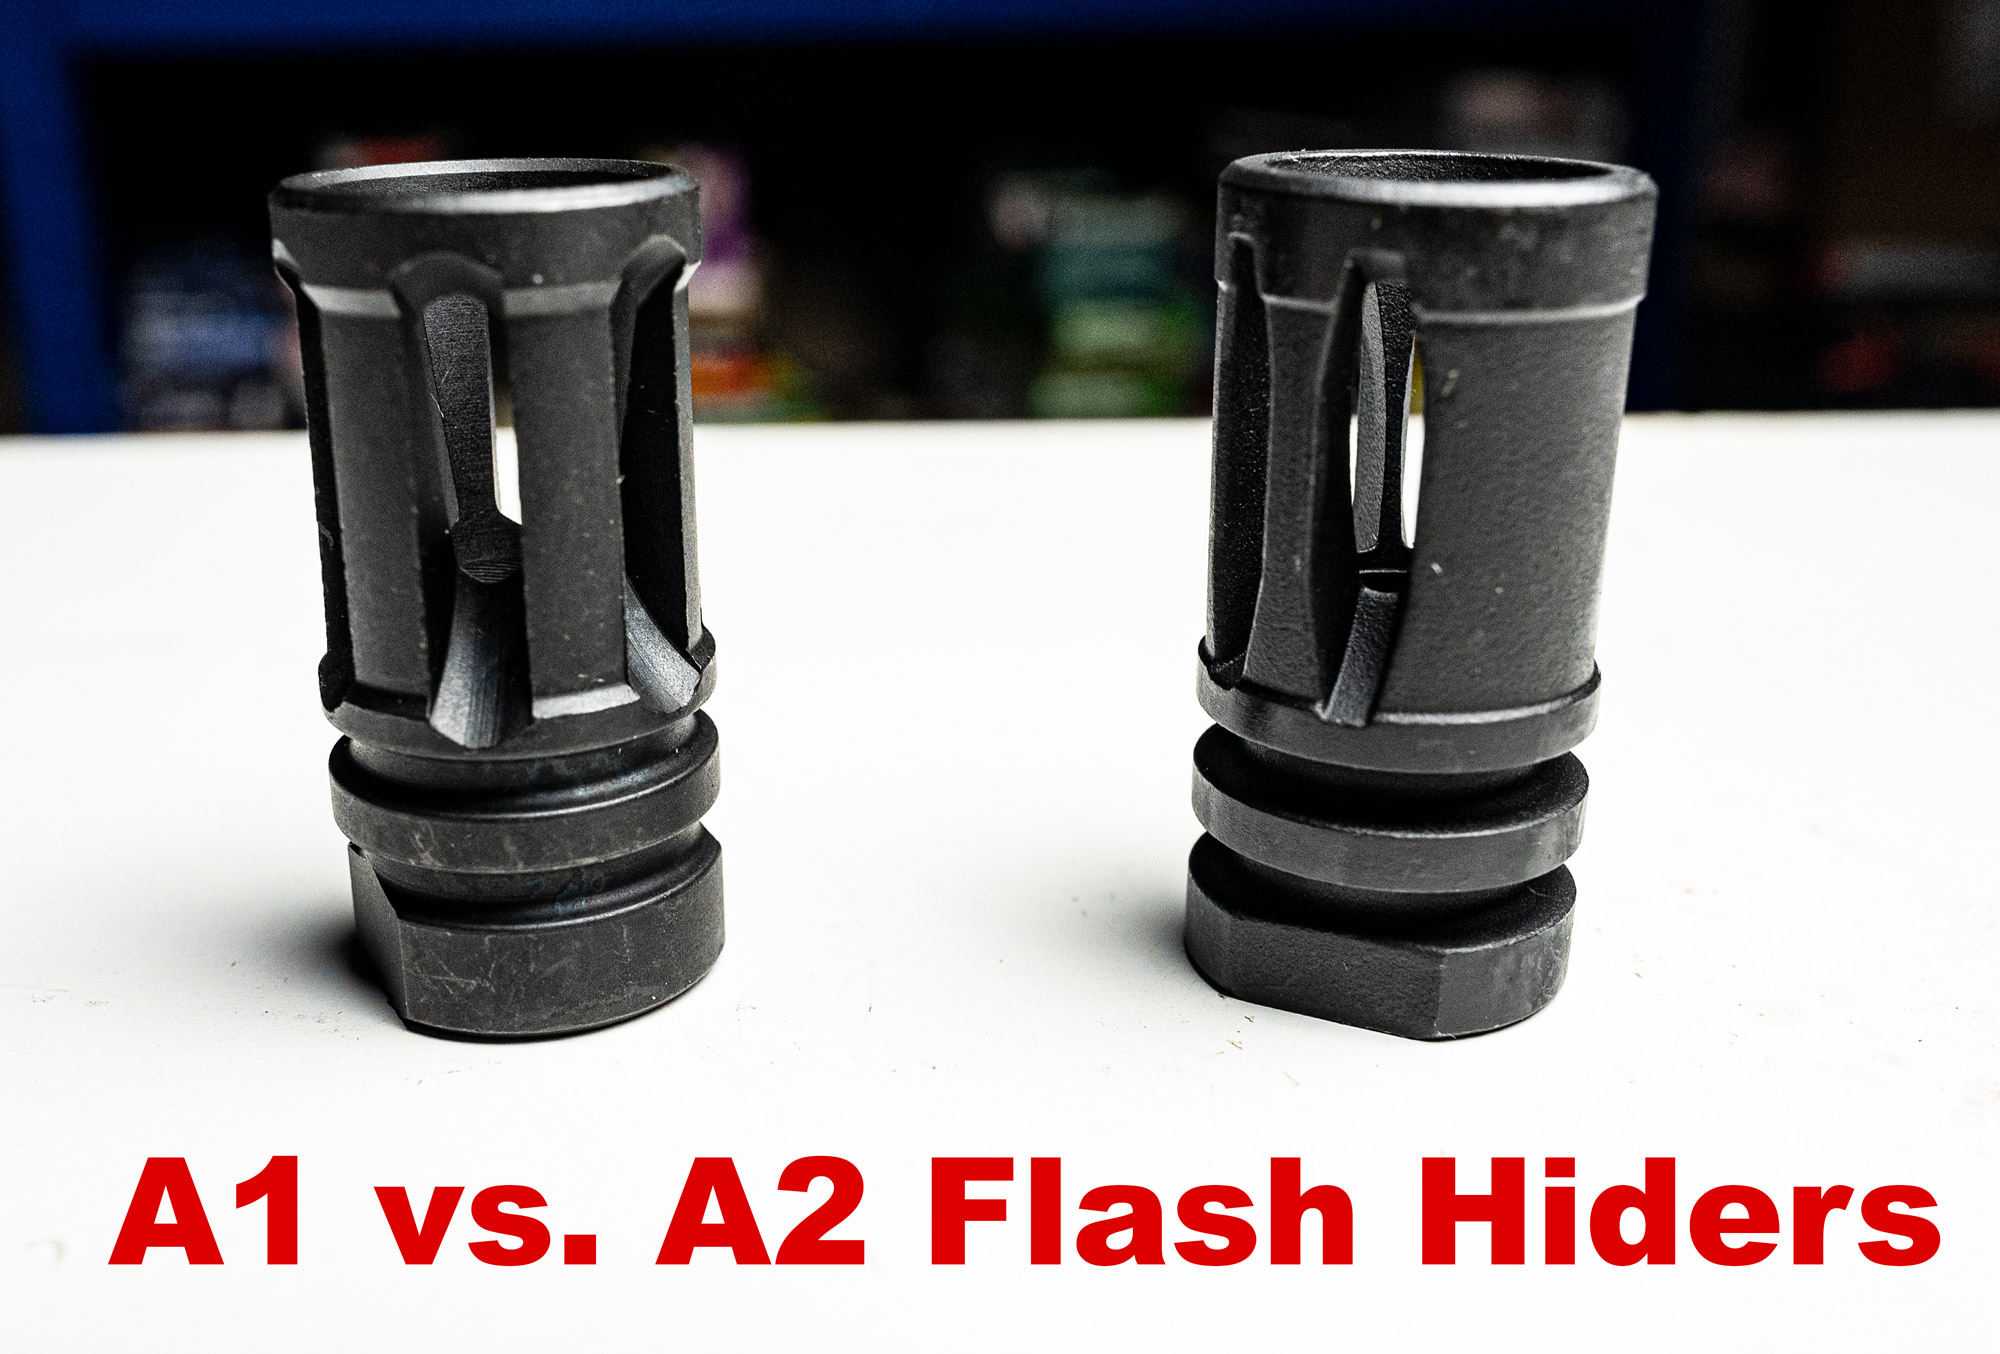 A1 and A2 flash hiders side by side